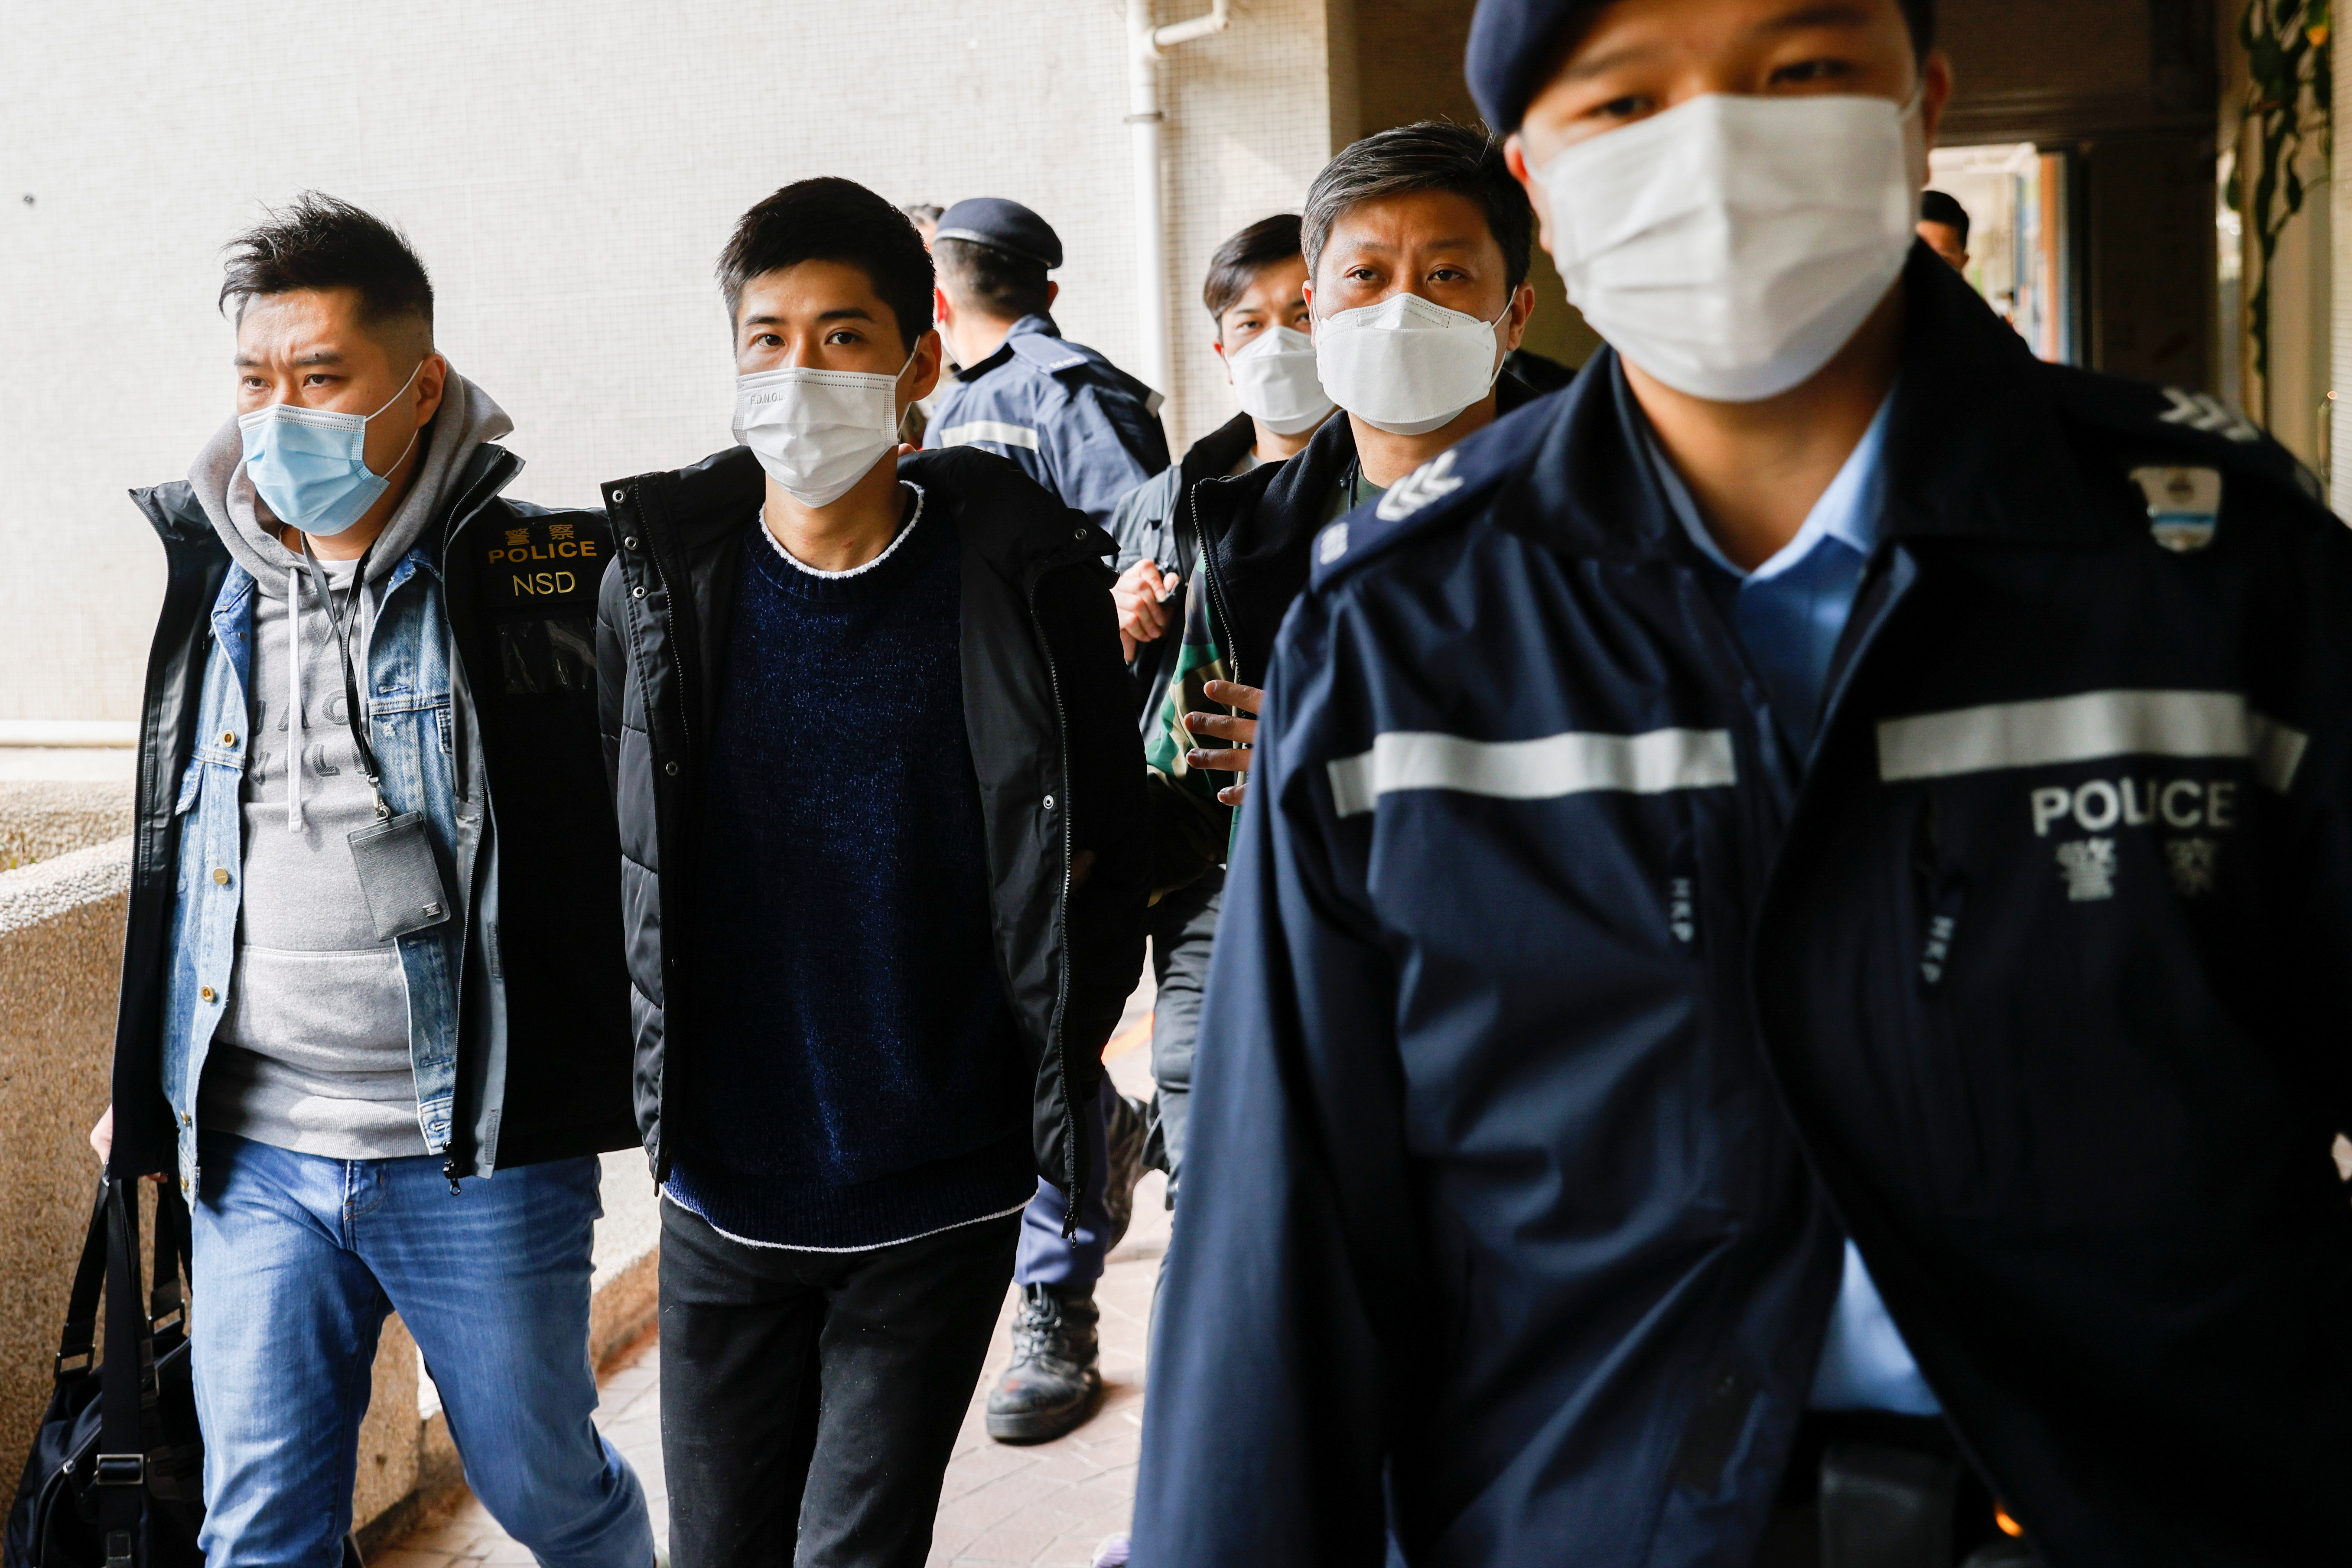 Pro-democracy activist Lester Shum is taken away by police officers as more than 50 Hong Kong activists are arrested under a security law in Hong Kong, China January 6, 2021. Picture taken January 6, 2021.   REUTERS/Stringer